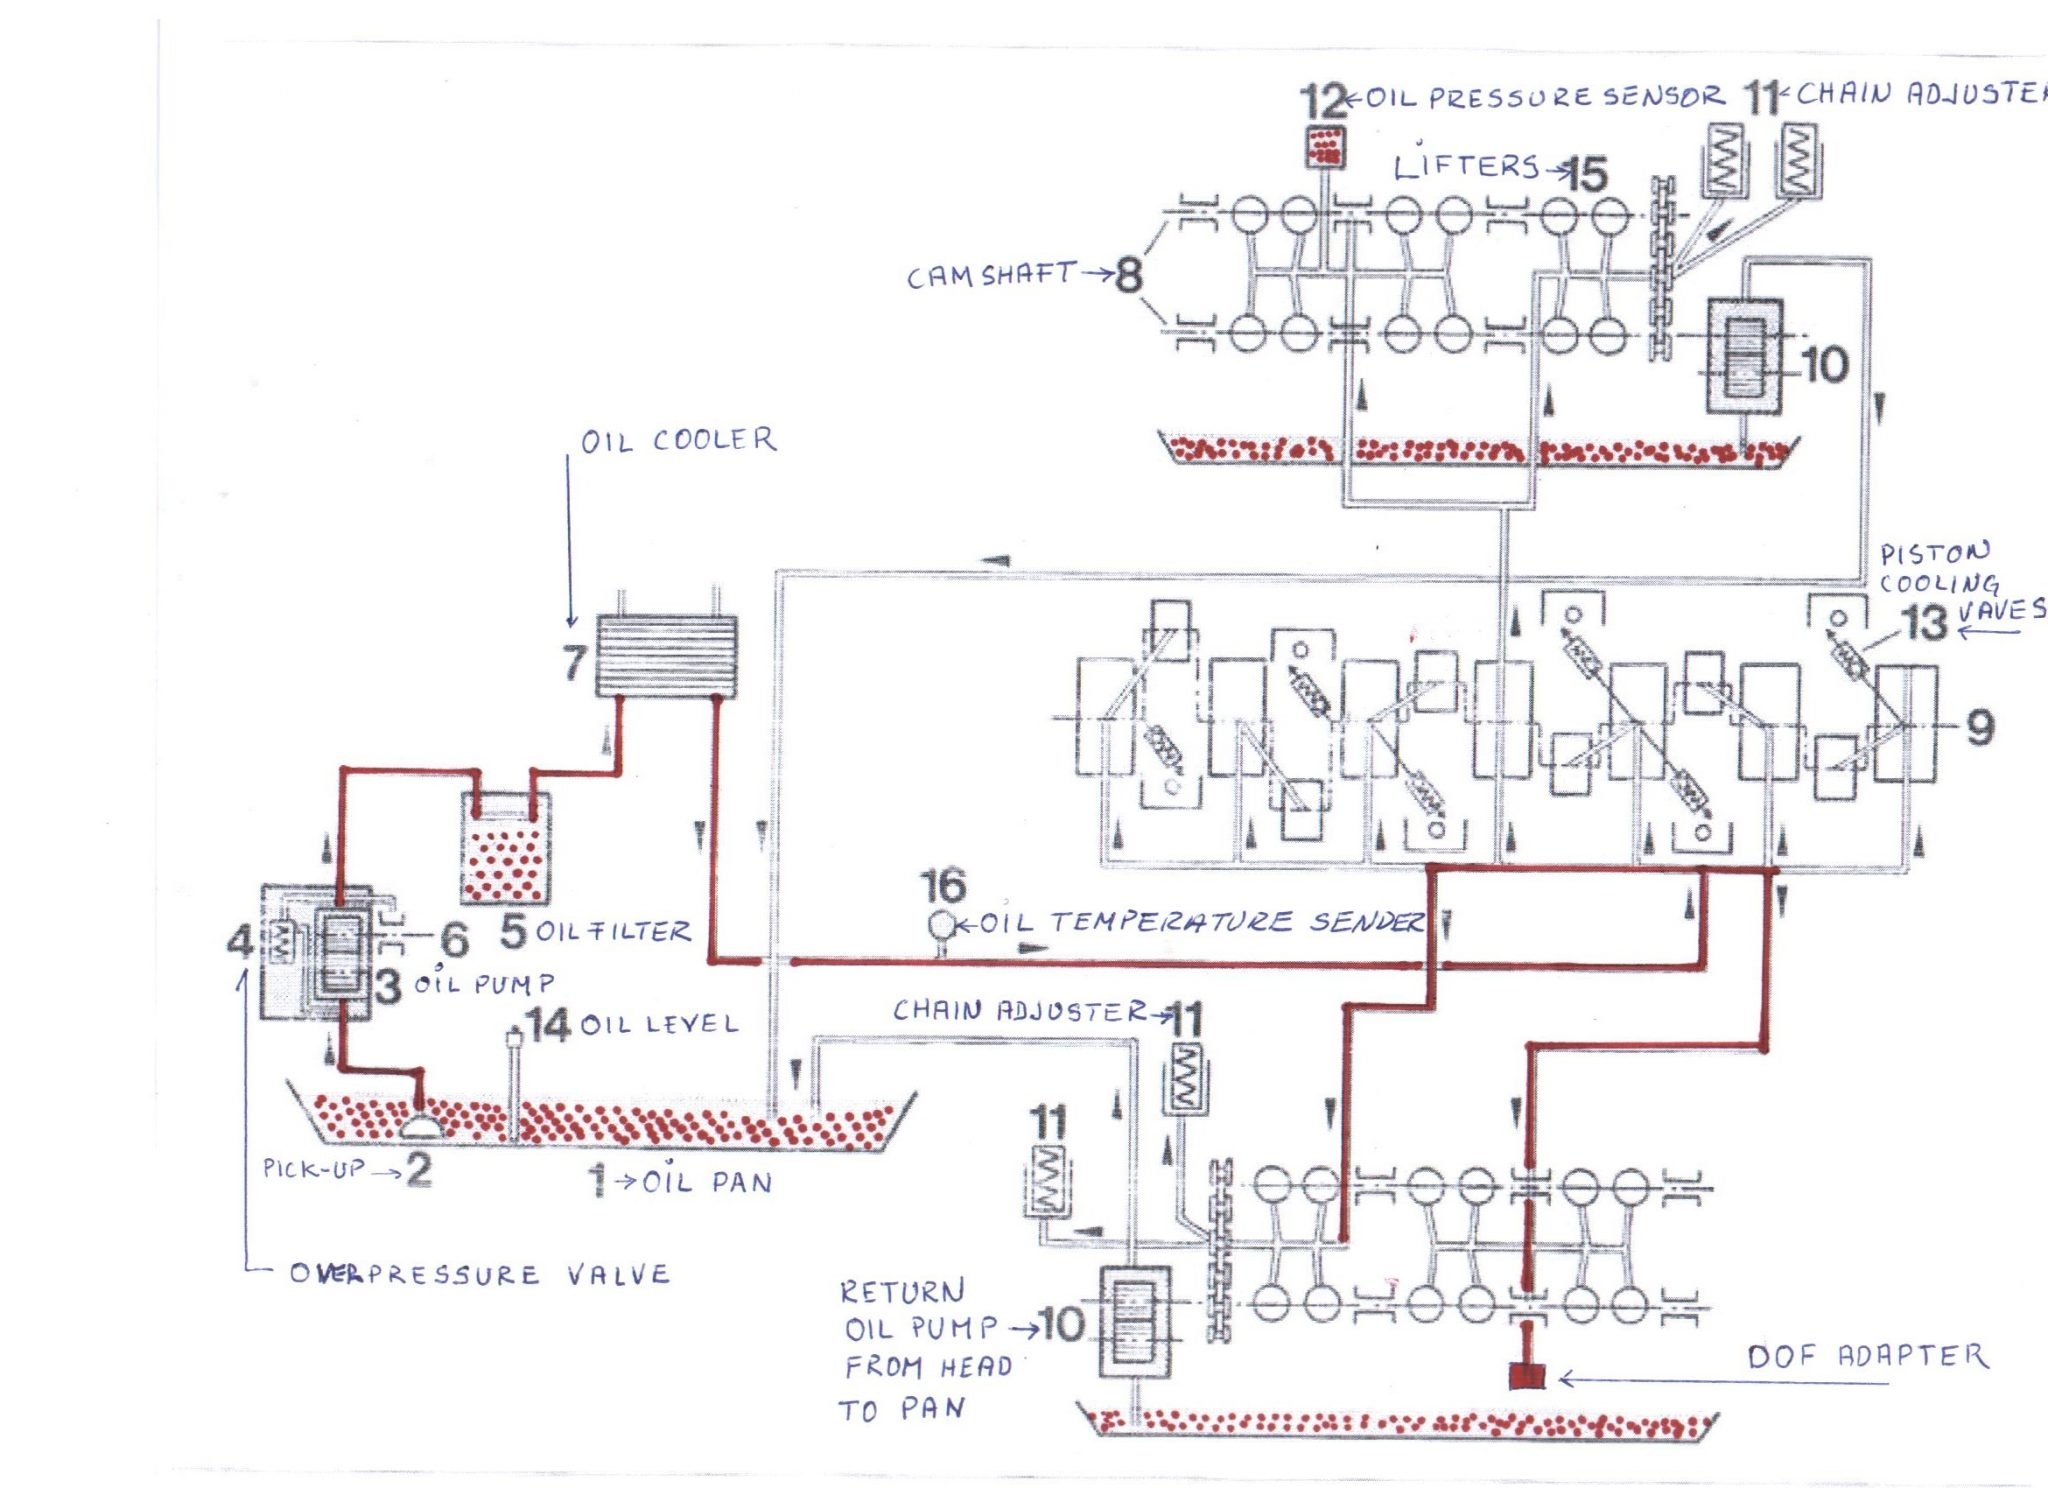 engine oil diagram can this m96 crankshaft be saved? - page 2 - rennlist - porsche discussion forums #5